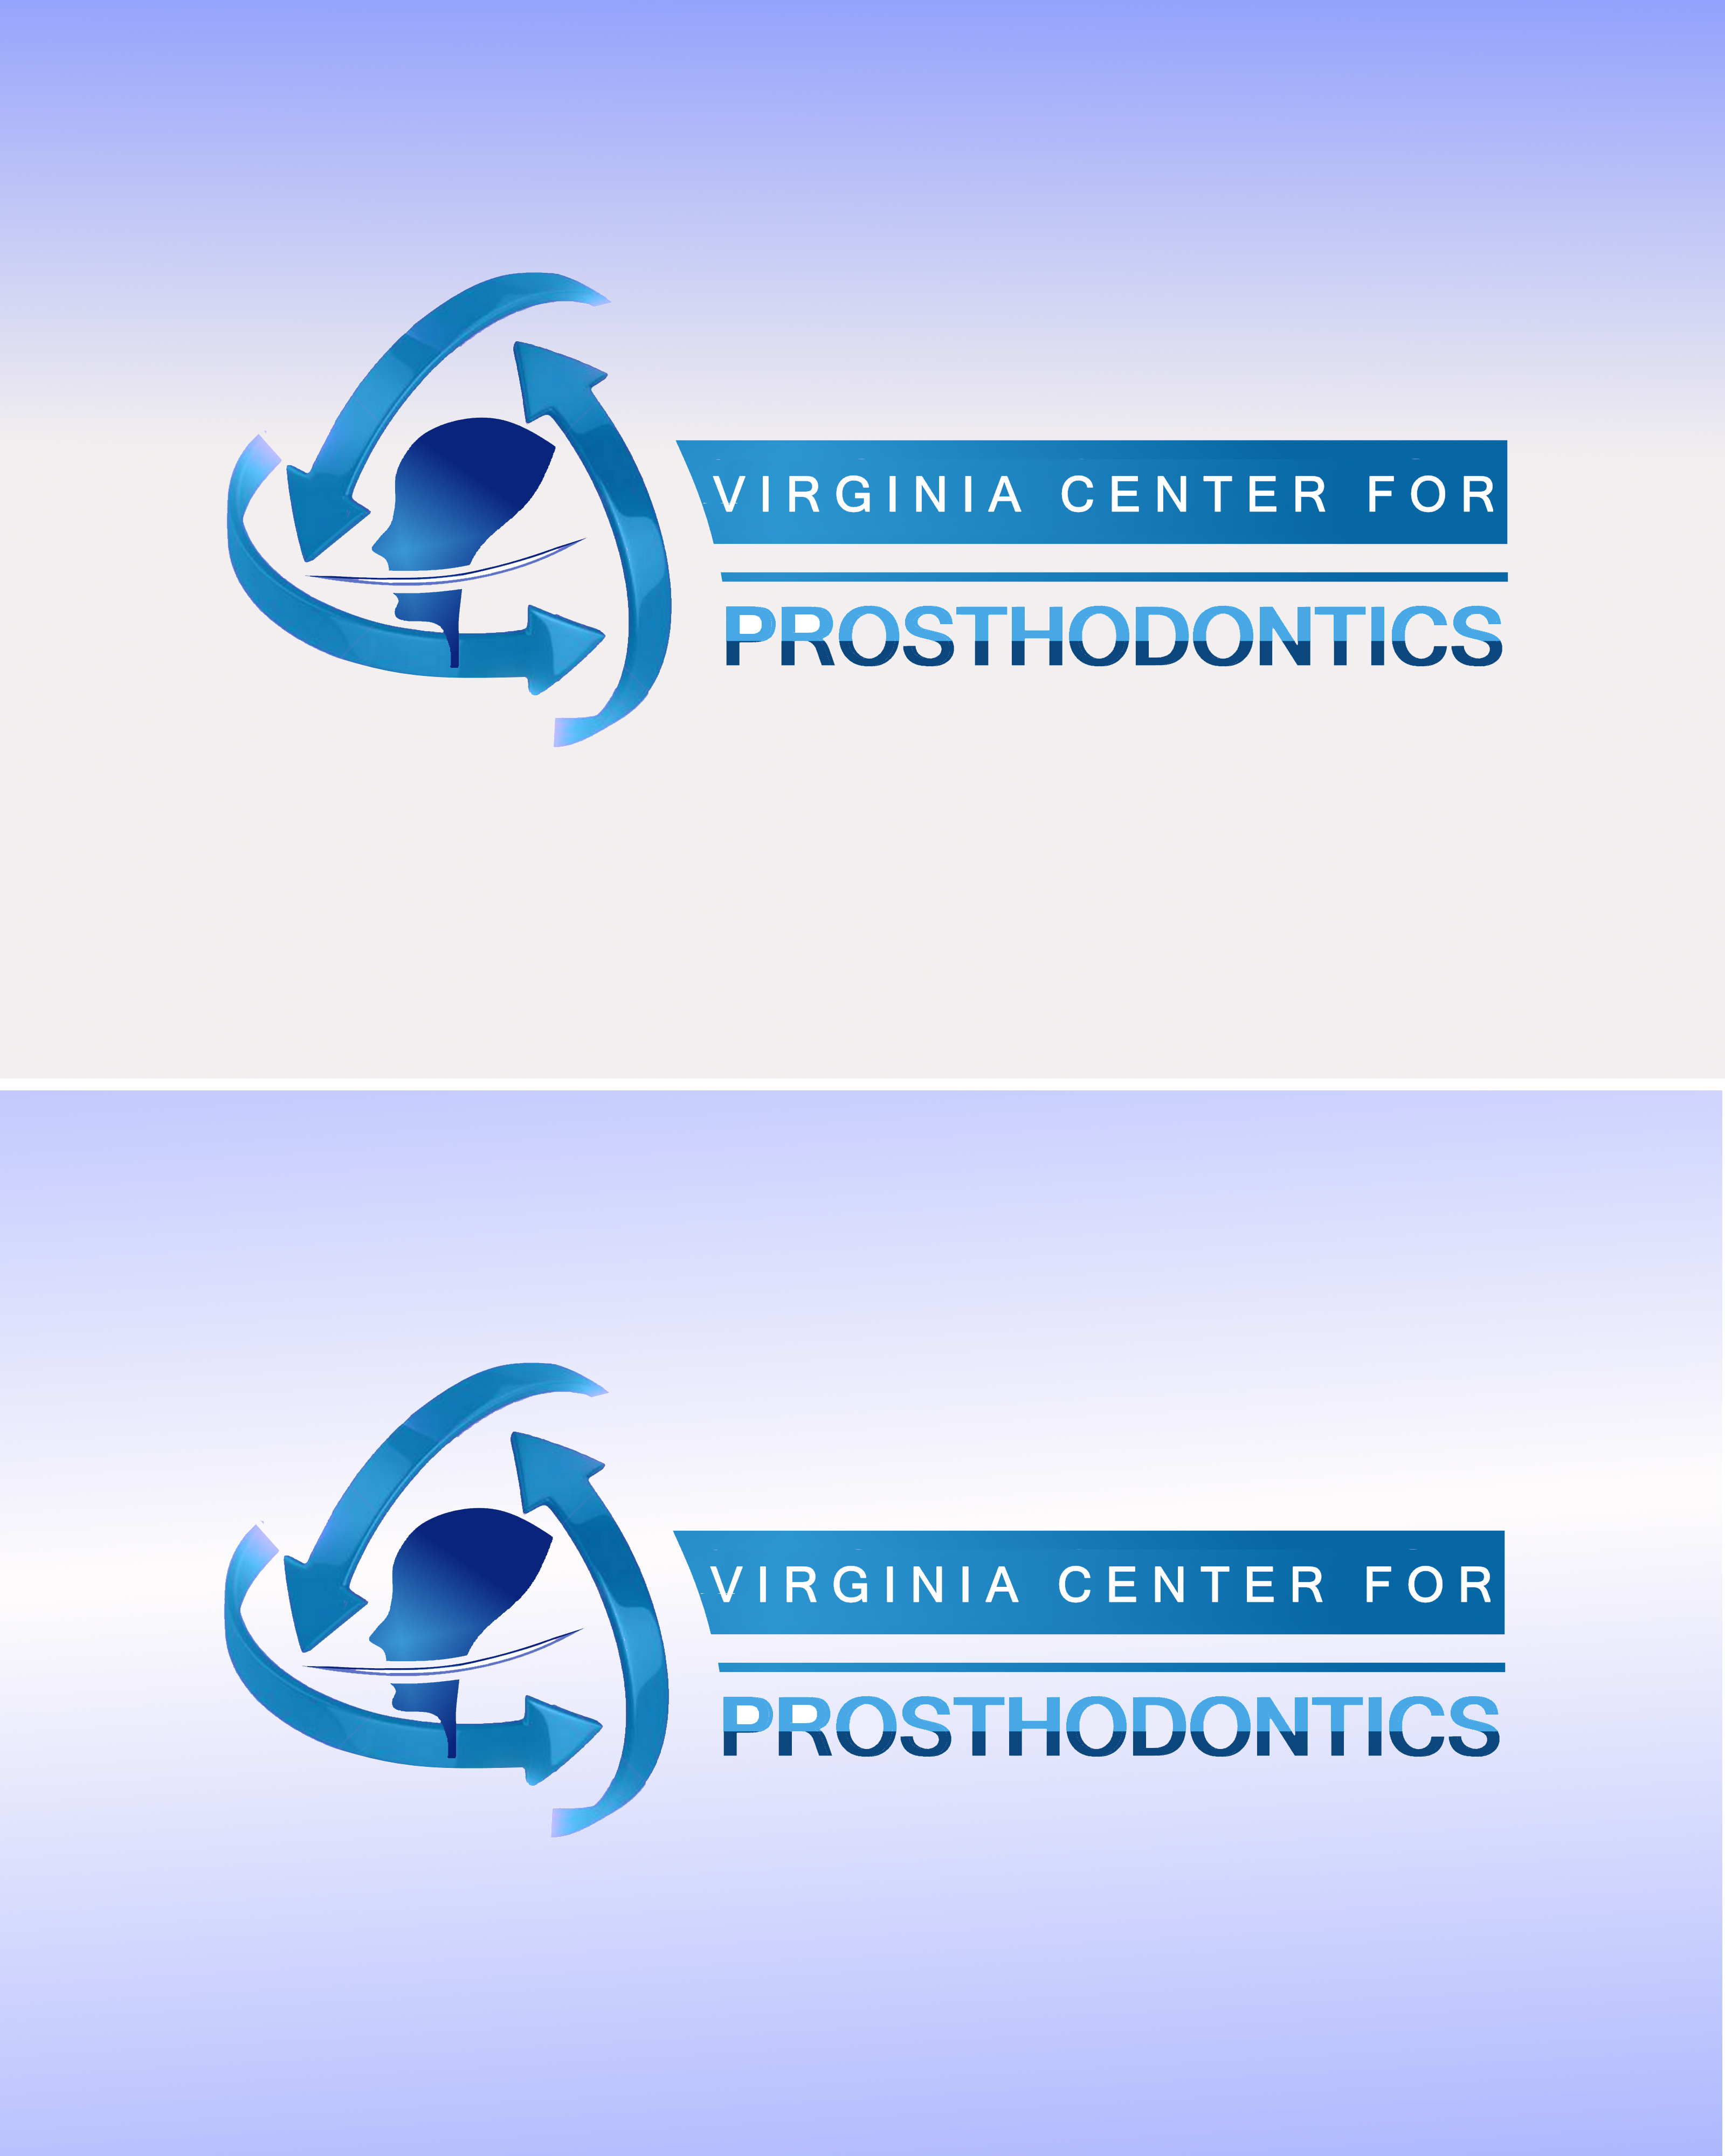 Logo Design by Roberto Bassi - Entry No. 109 in the Logo Design Contest Imaginative Logo Design for Virginia Center for Prosthodontics.